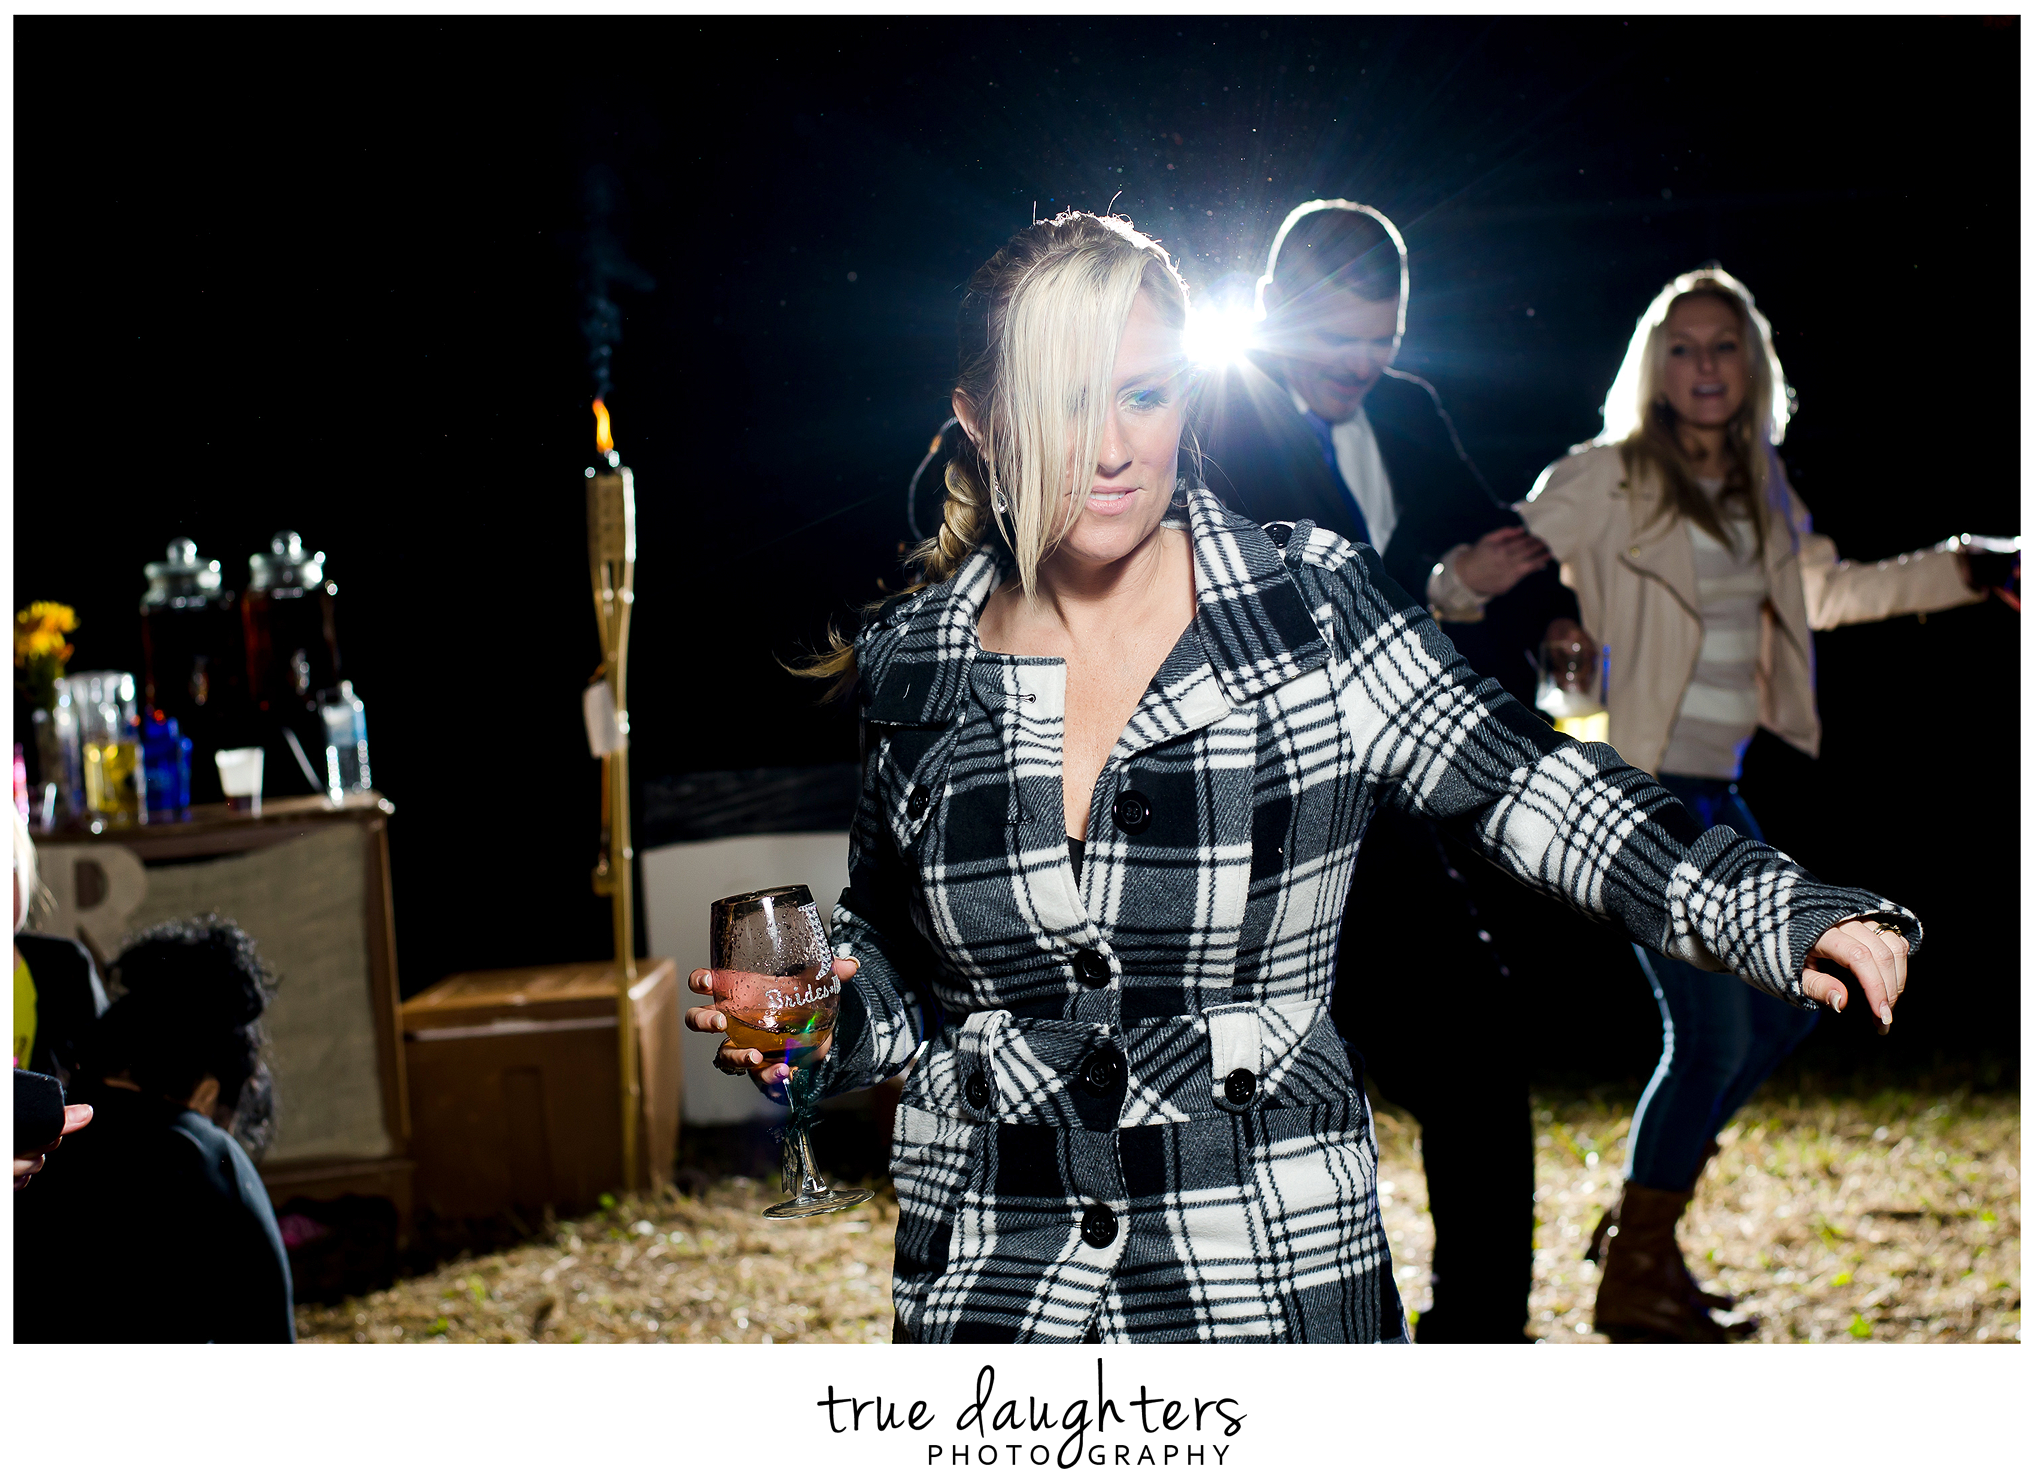 True_Daughters_Photography_Campitelli_Wedding-39.png